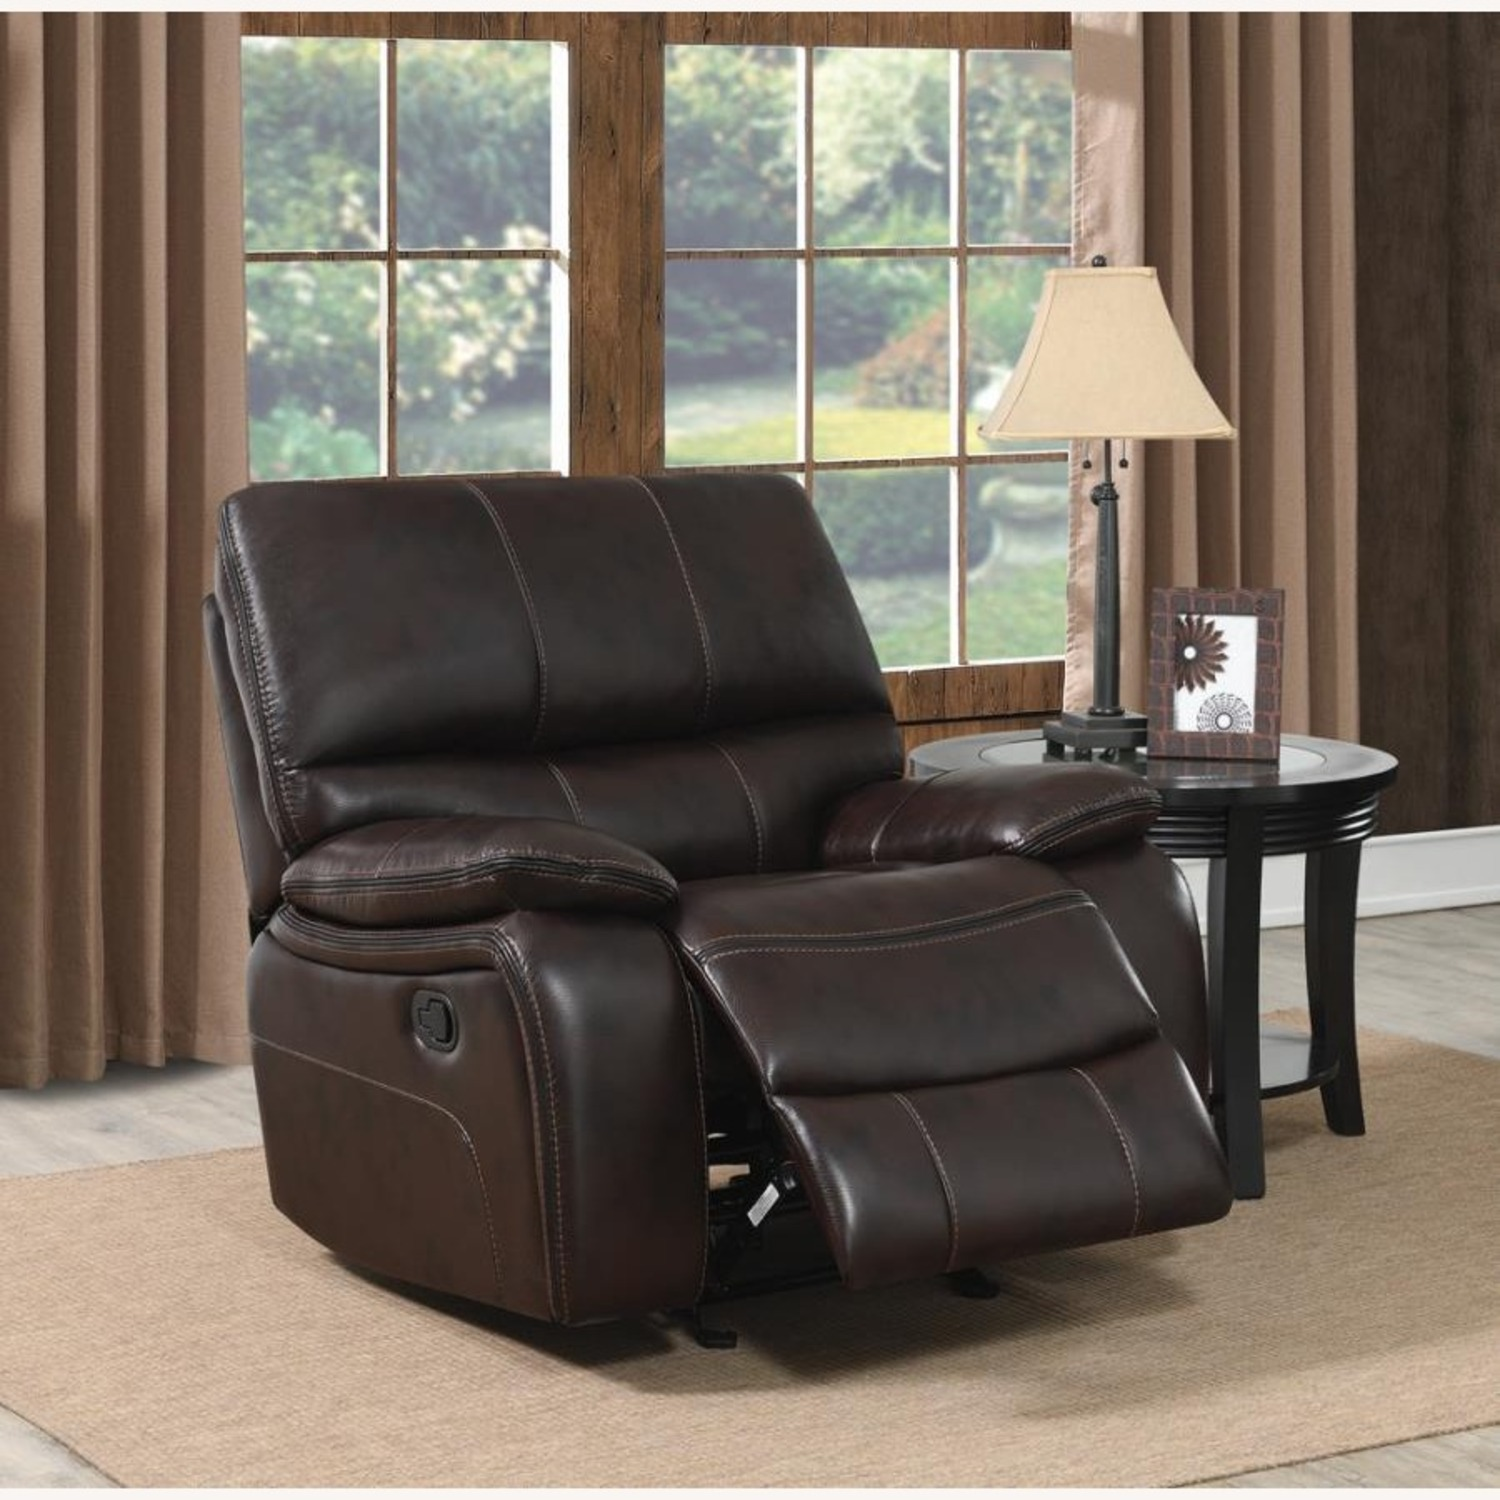 Glider Recliner W/ Scooped Seating In Dark Brown - image-6